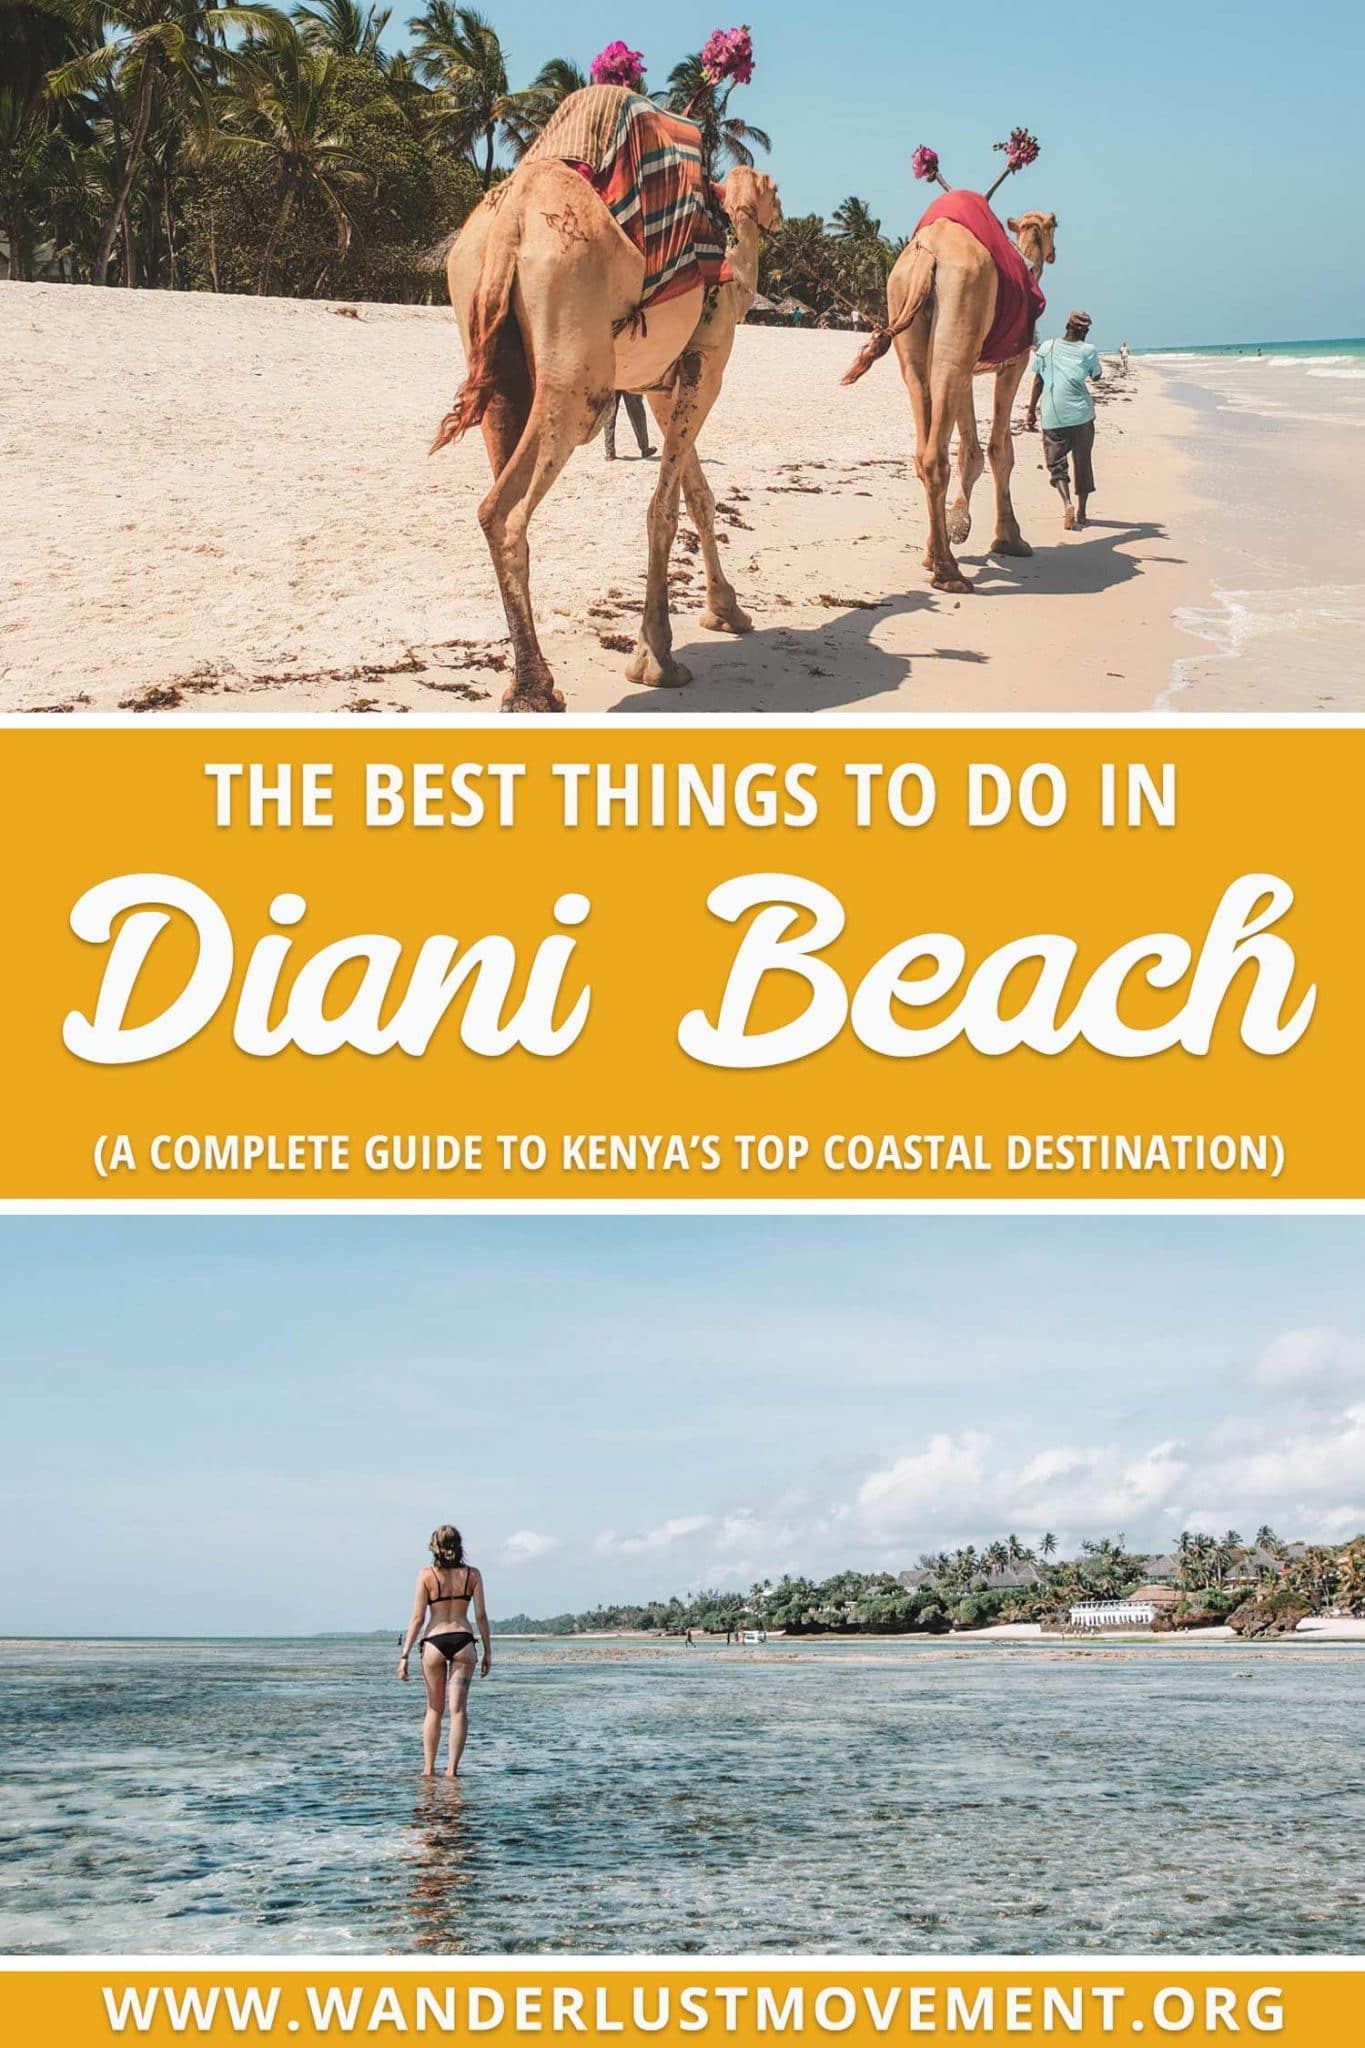 7 Epic Things to Do in Diani Beach, Kenya